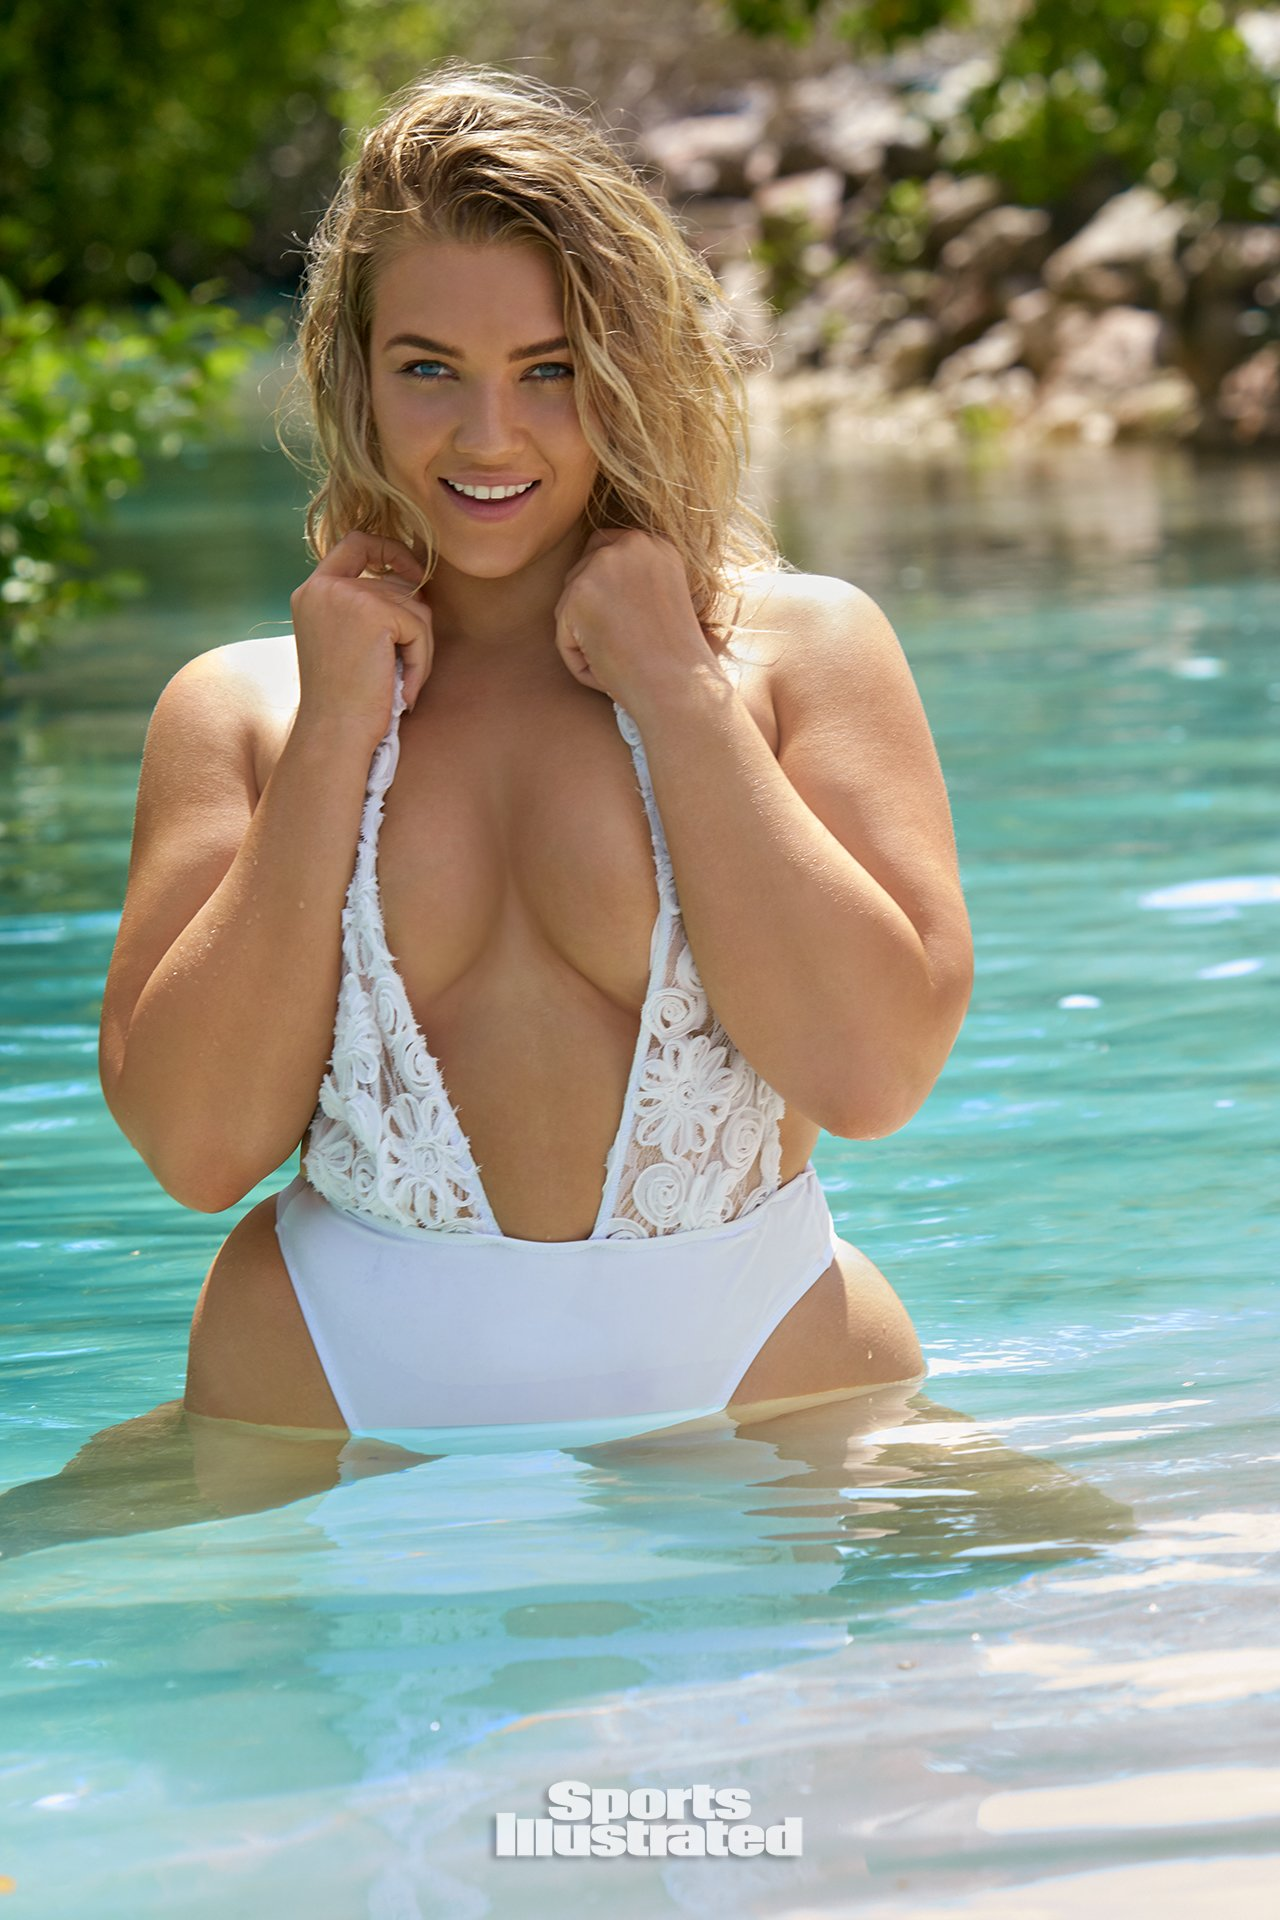 Sports Illustrated Swimsuit Issue 2018015.jpg